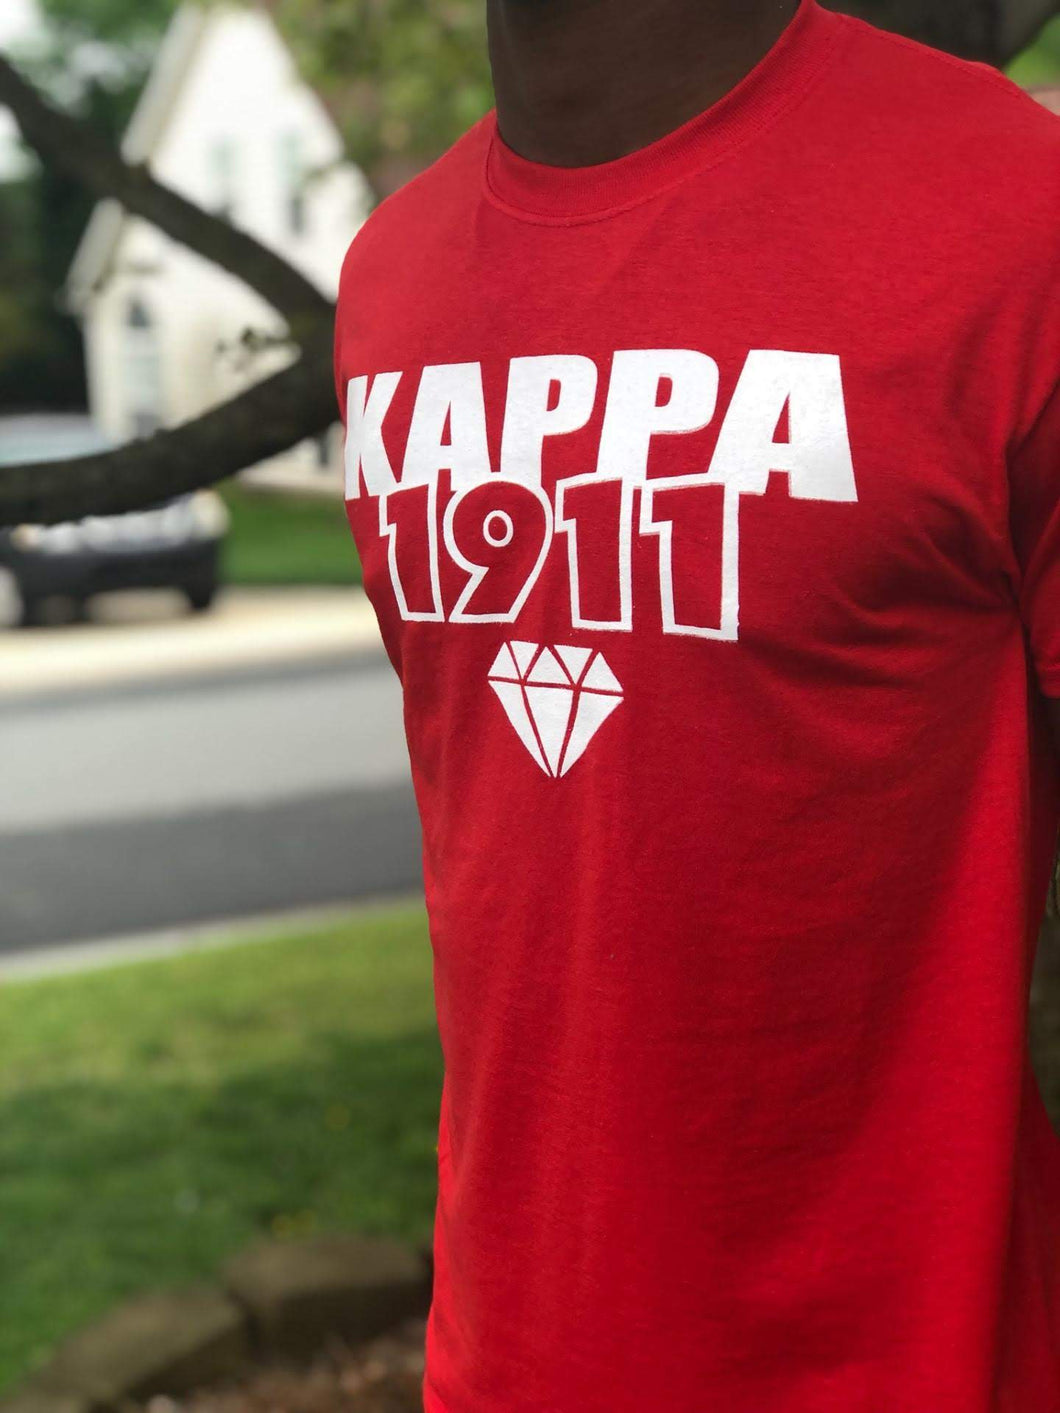 Red 1911 T-Shirt